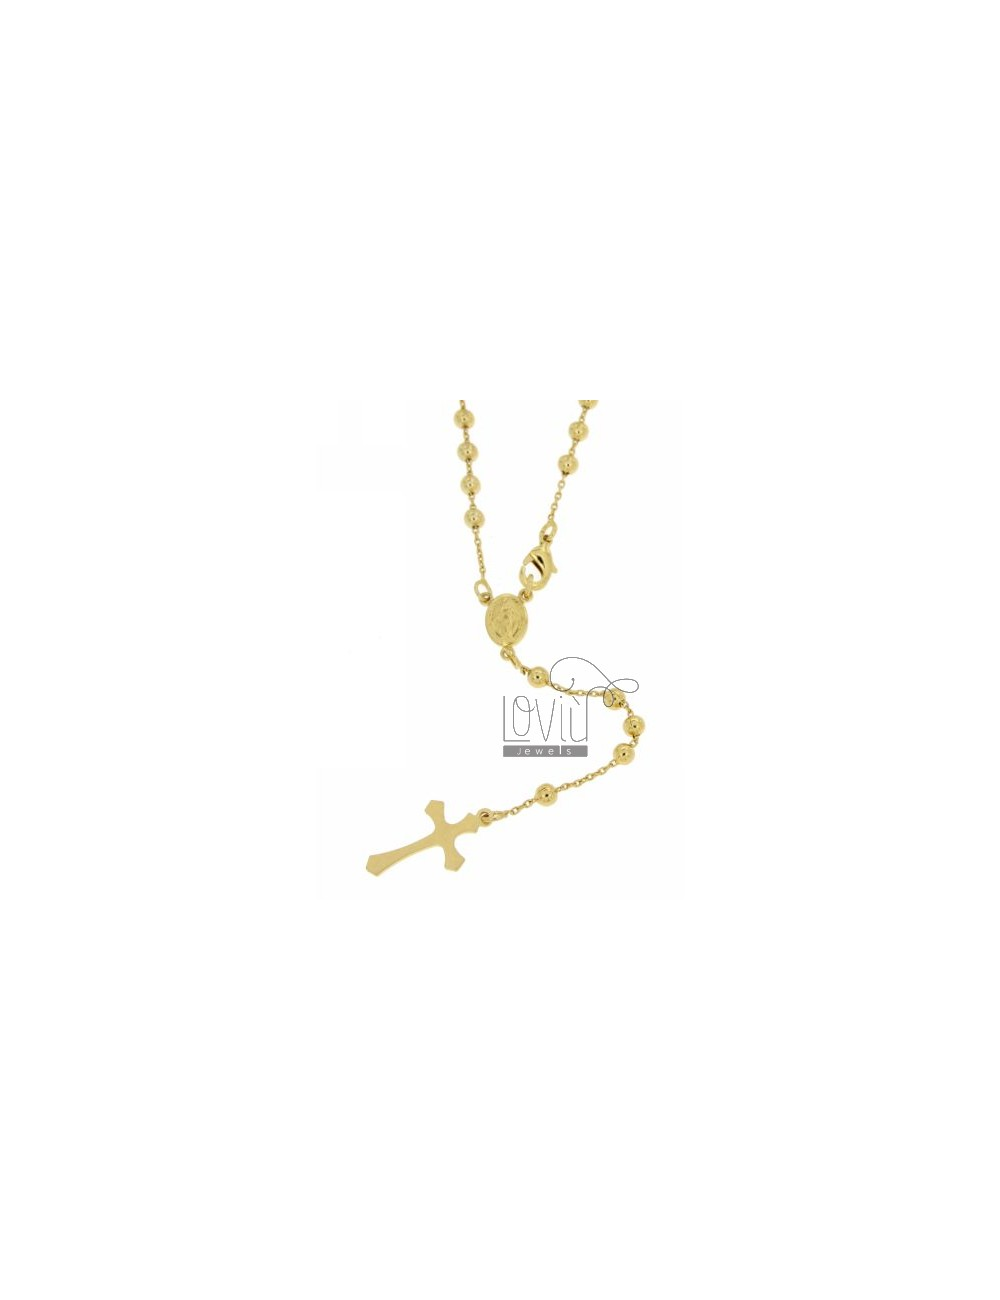 CHAPLET 4 MM STEEL GOLD PLATED 50 CM